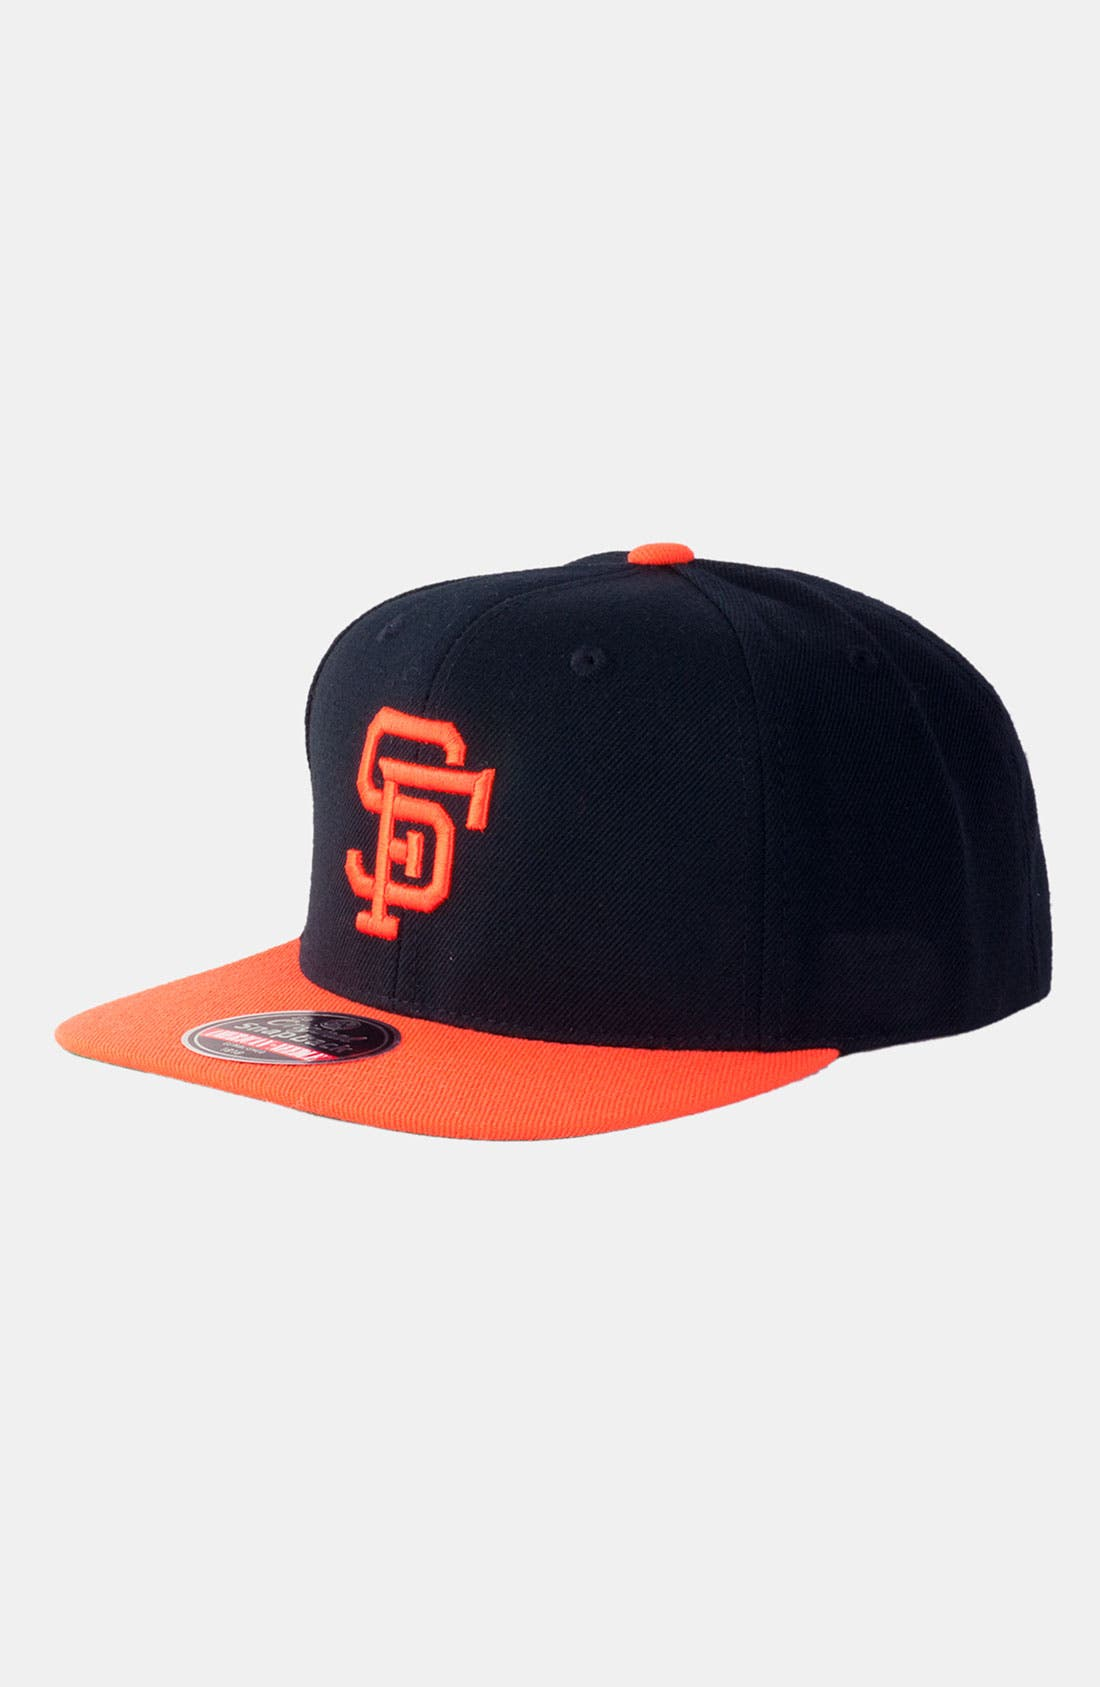 Alternate Image 1 Selected - American Needle 'San Francisco Giants - Cooperstown' Snapback Baseball Cap